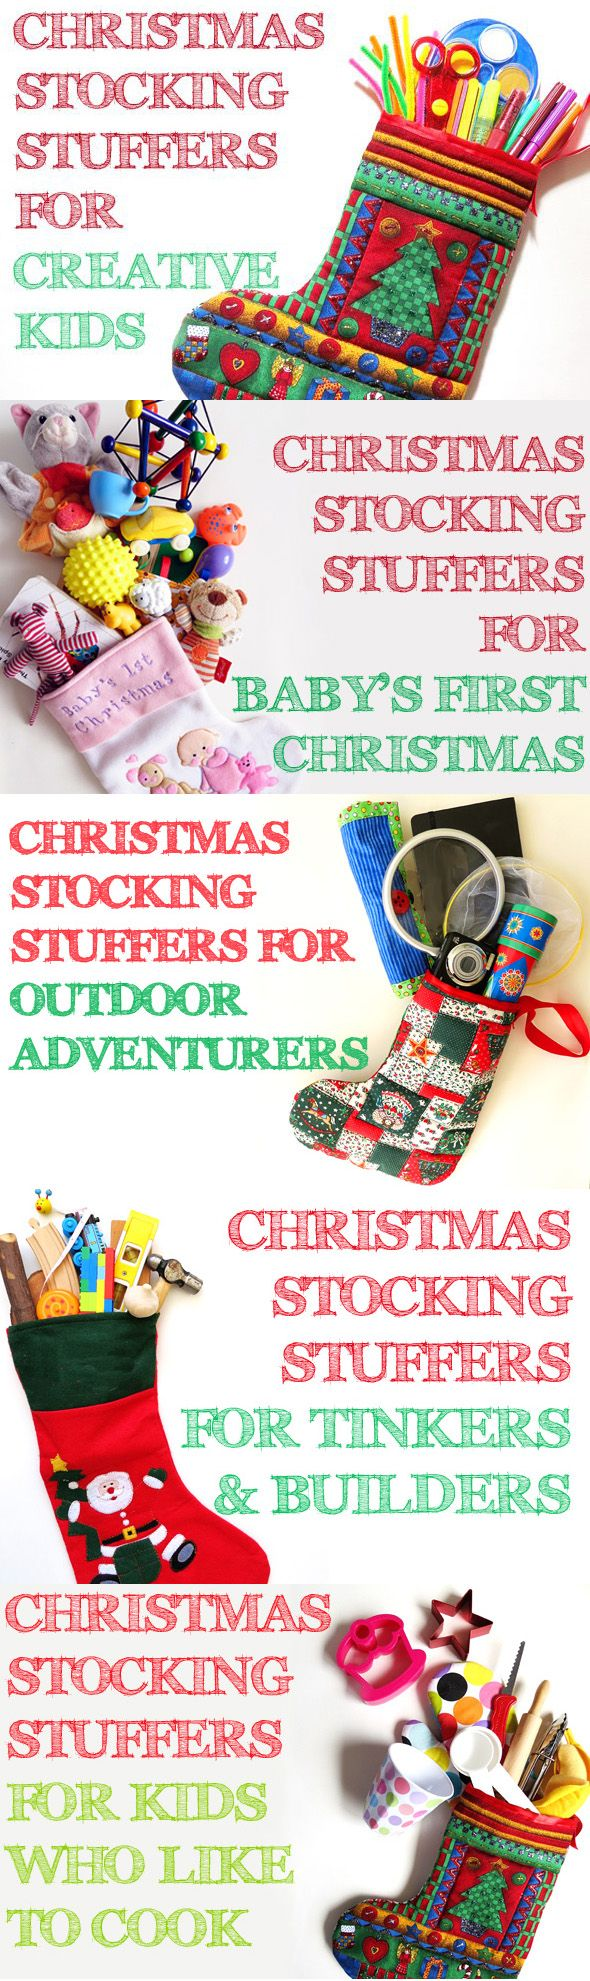 The ultimate guide to stocking stuffer ideas for kids...according to interests.